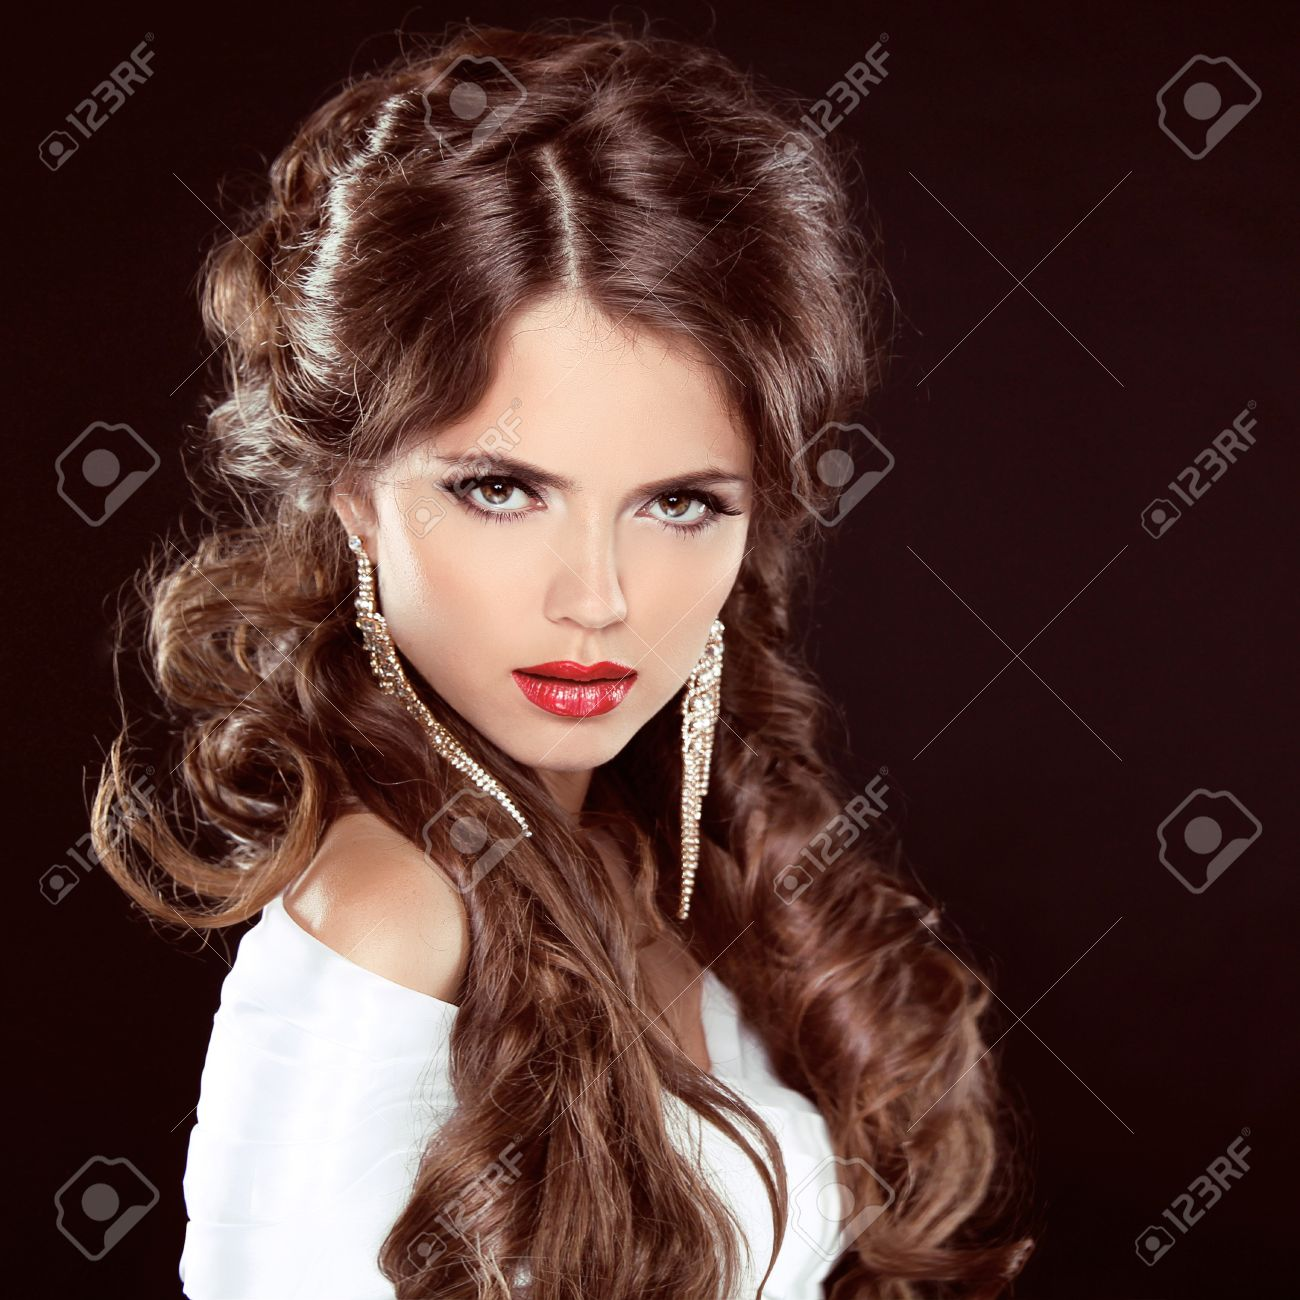 Long Hair Styling Fascinating Hairstylebeautiful Girl Portraitbeauty Woman With Brown Curly .